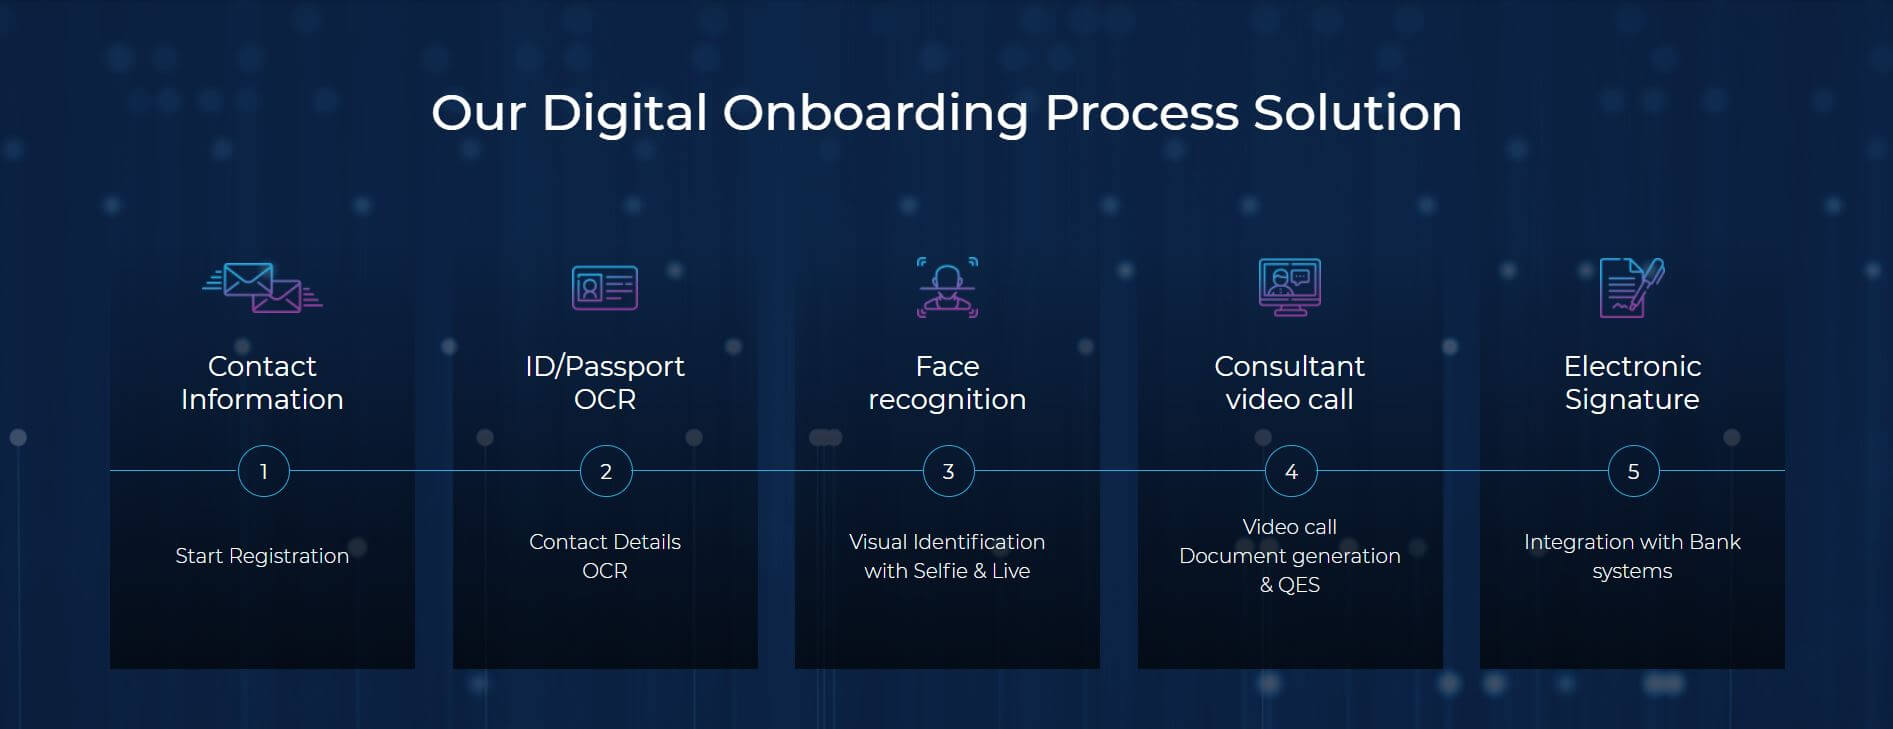 Softelligence Digital Onboarding Process Solution